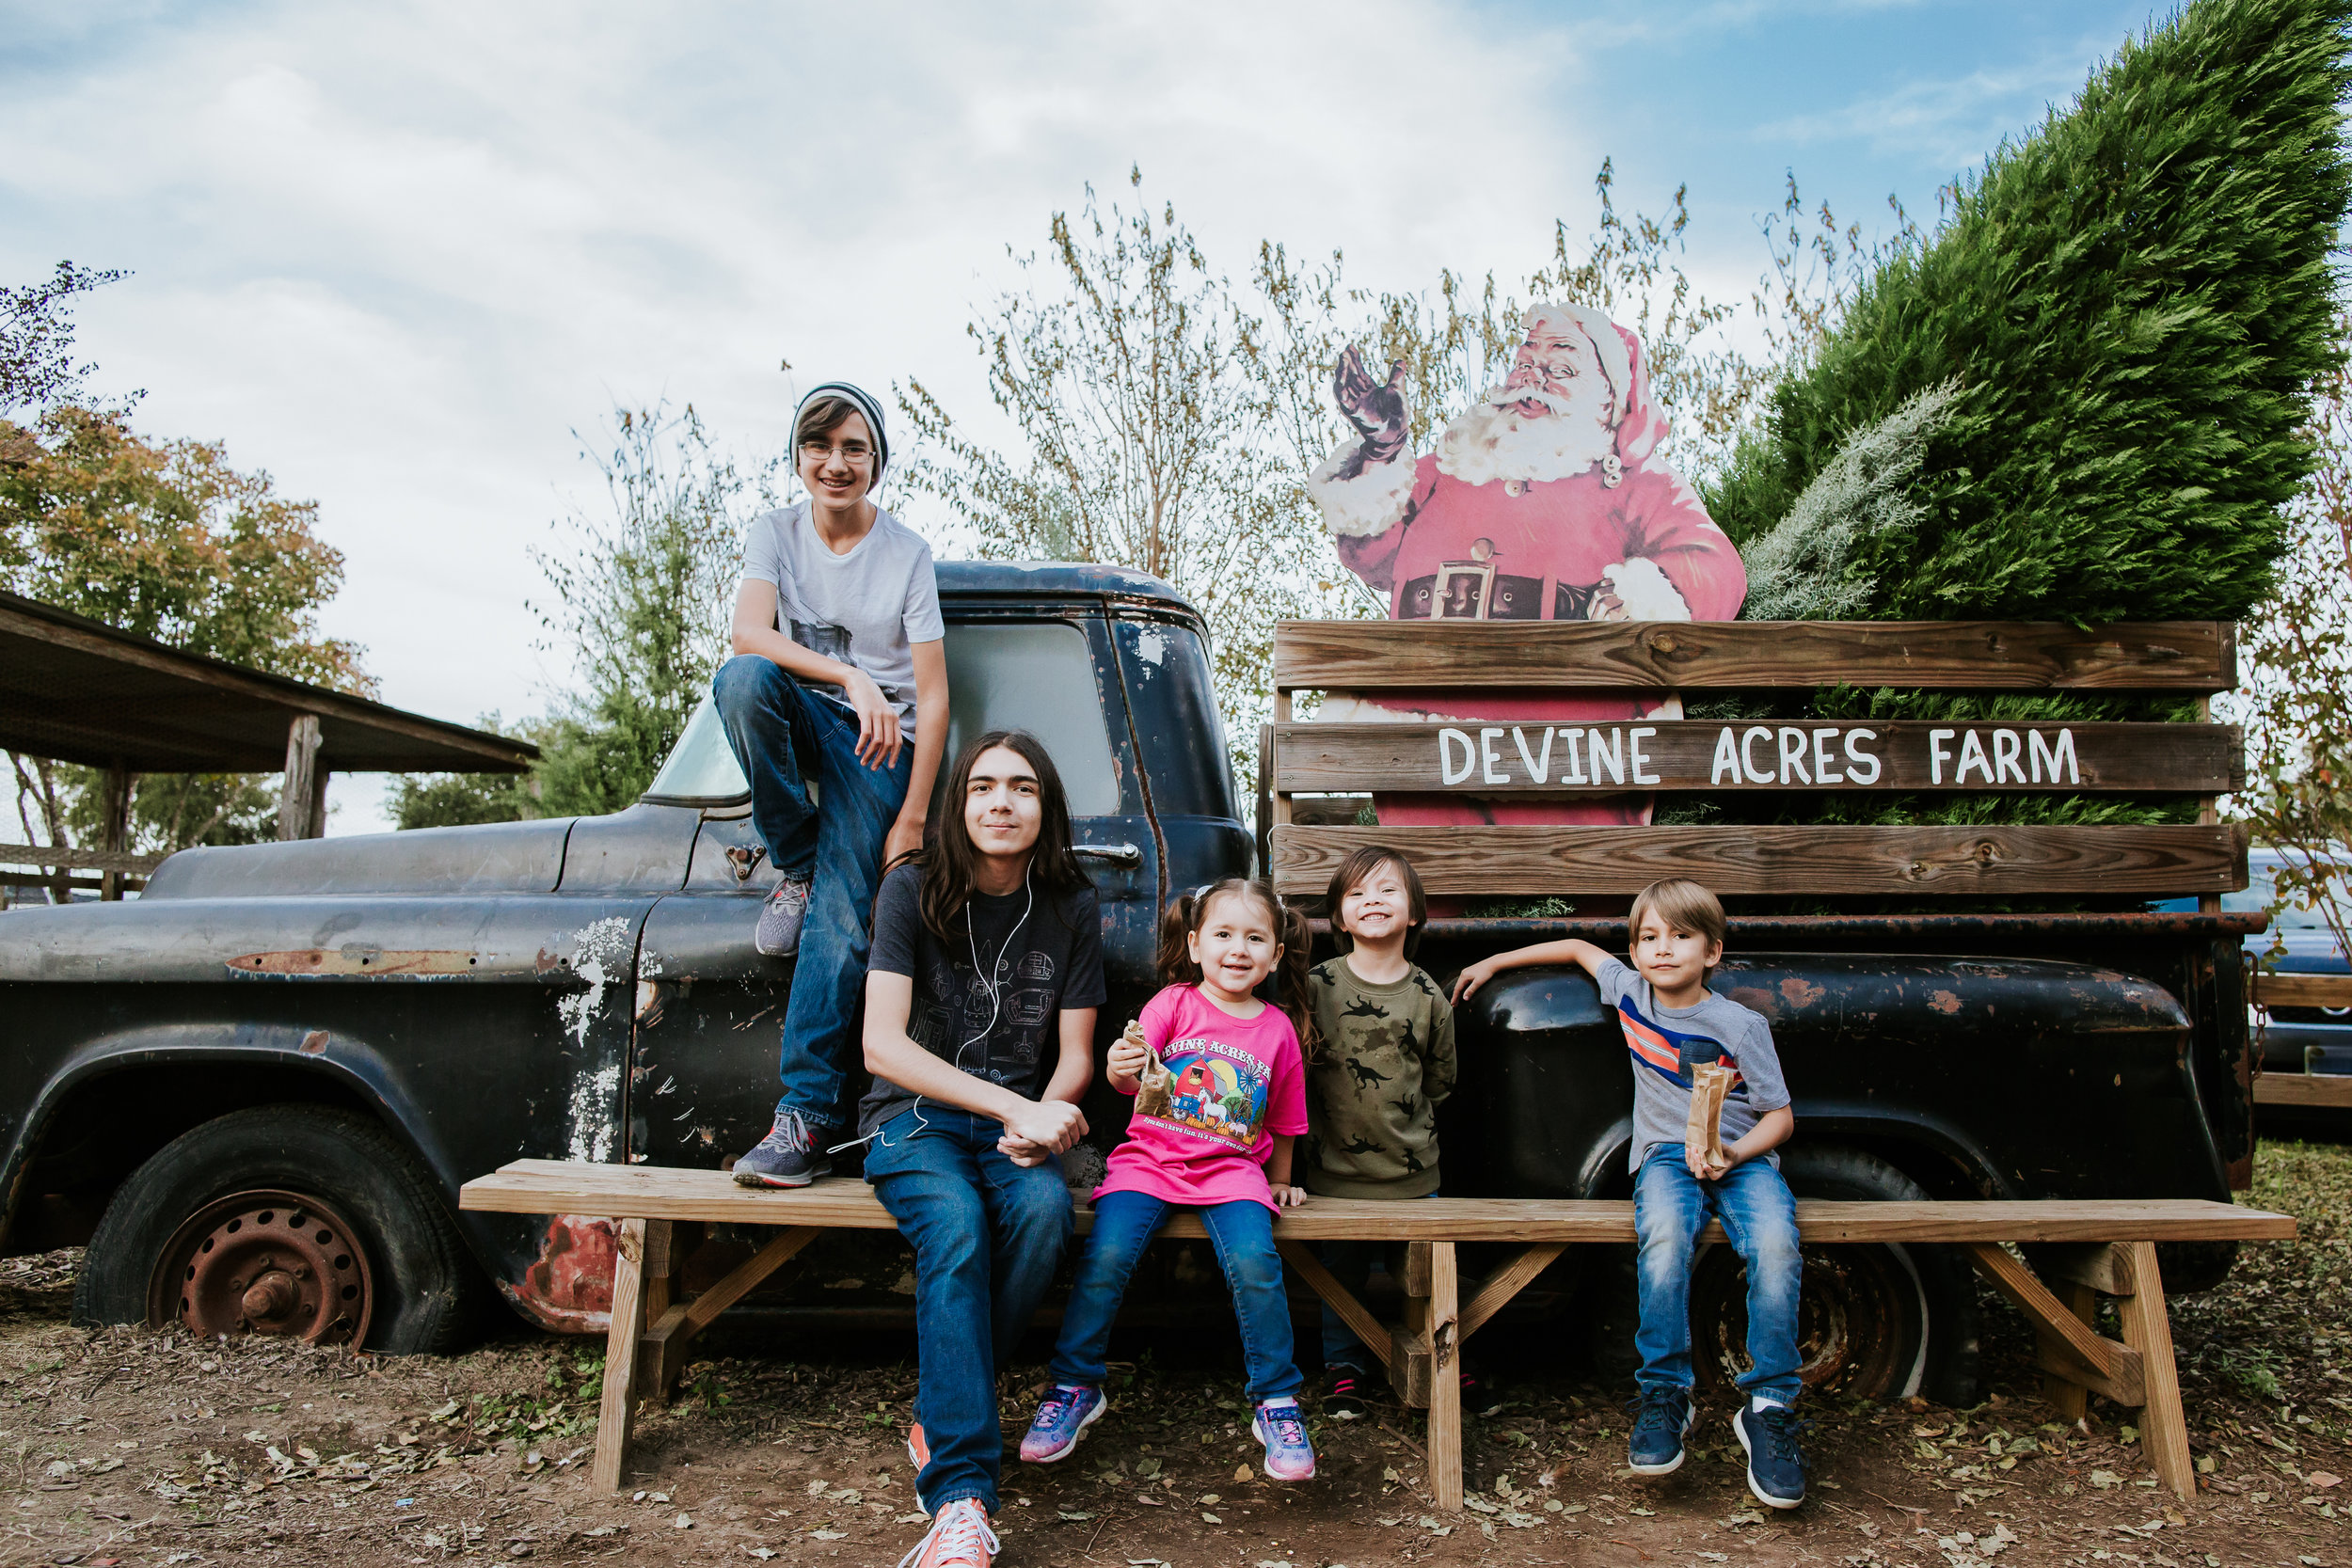 My kiddos at  Devine Acres Farm 2018. Devine, TX | Photo by: Norma Hess Photography rgvbirthphotography.com